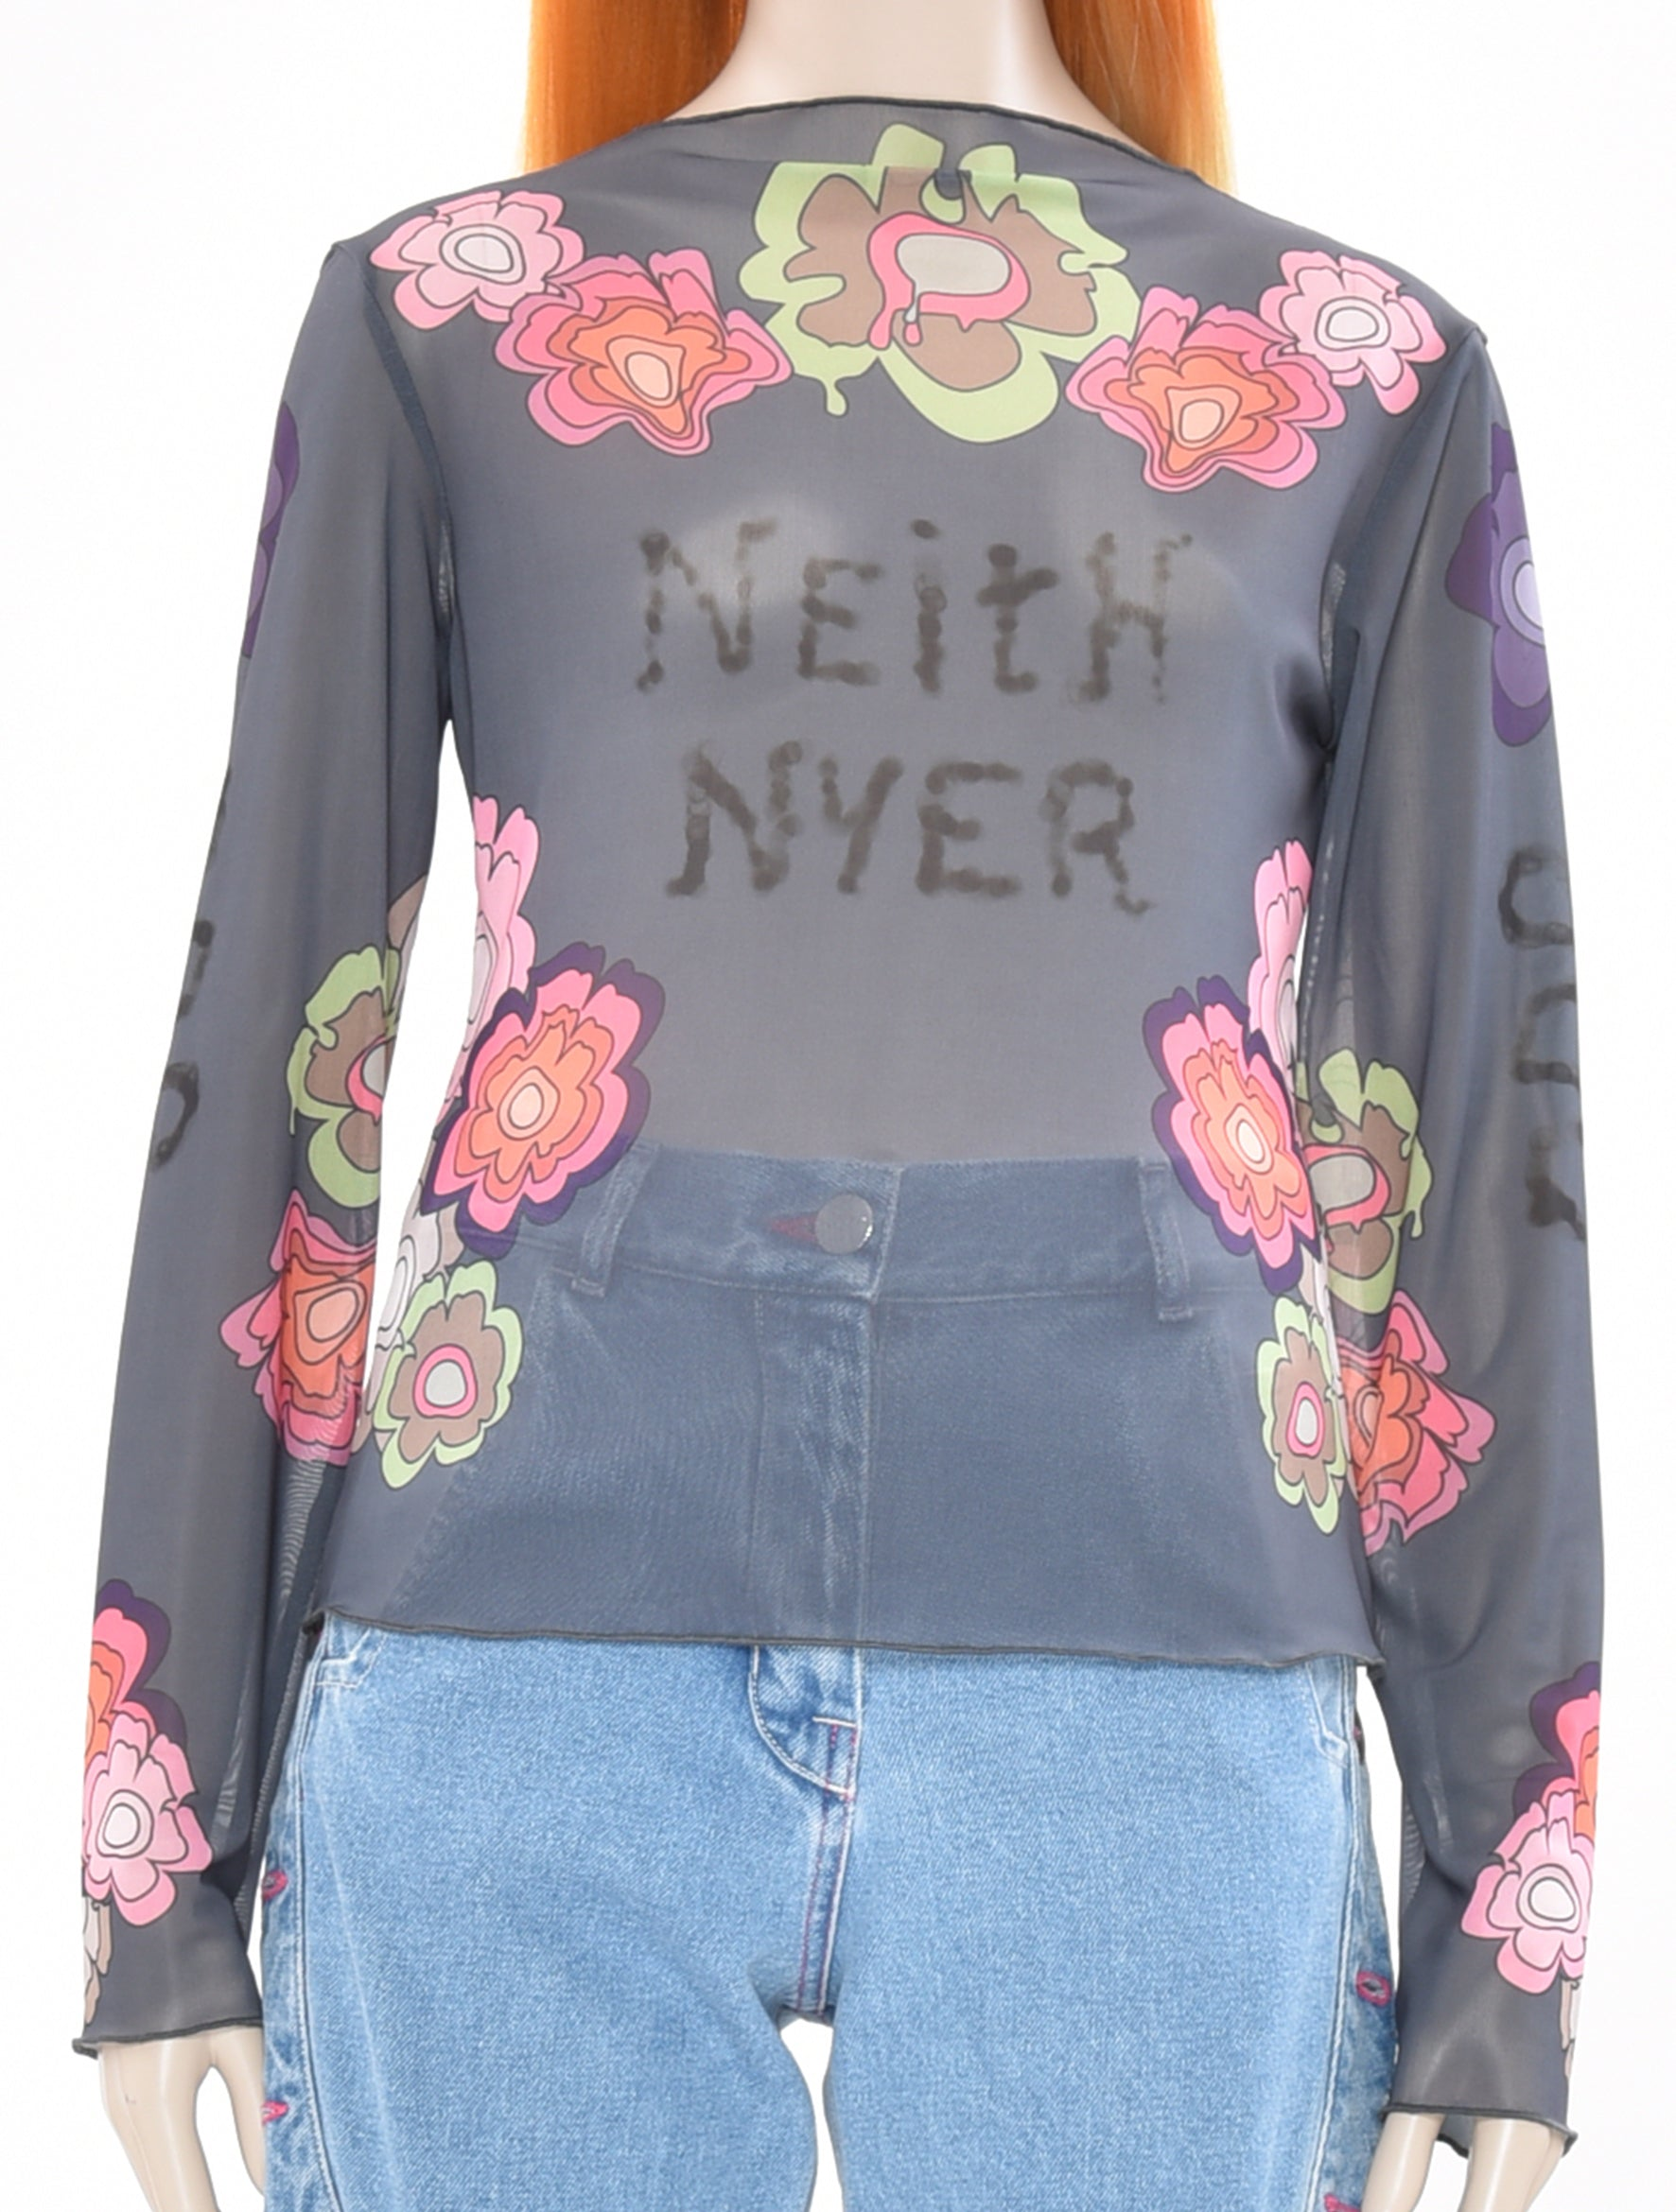 "x DDP ""Neith Nyer"" Mesh Top"